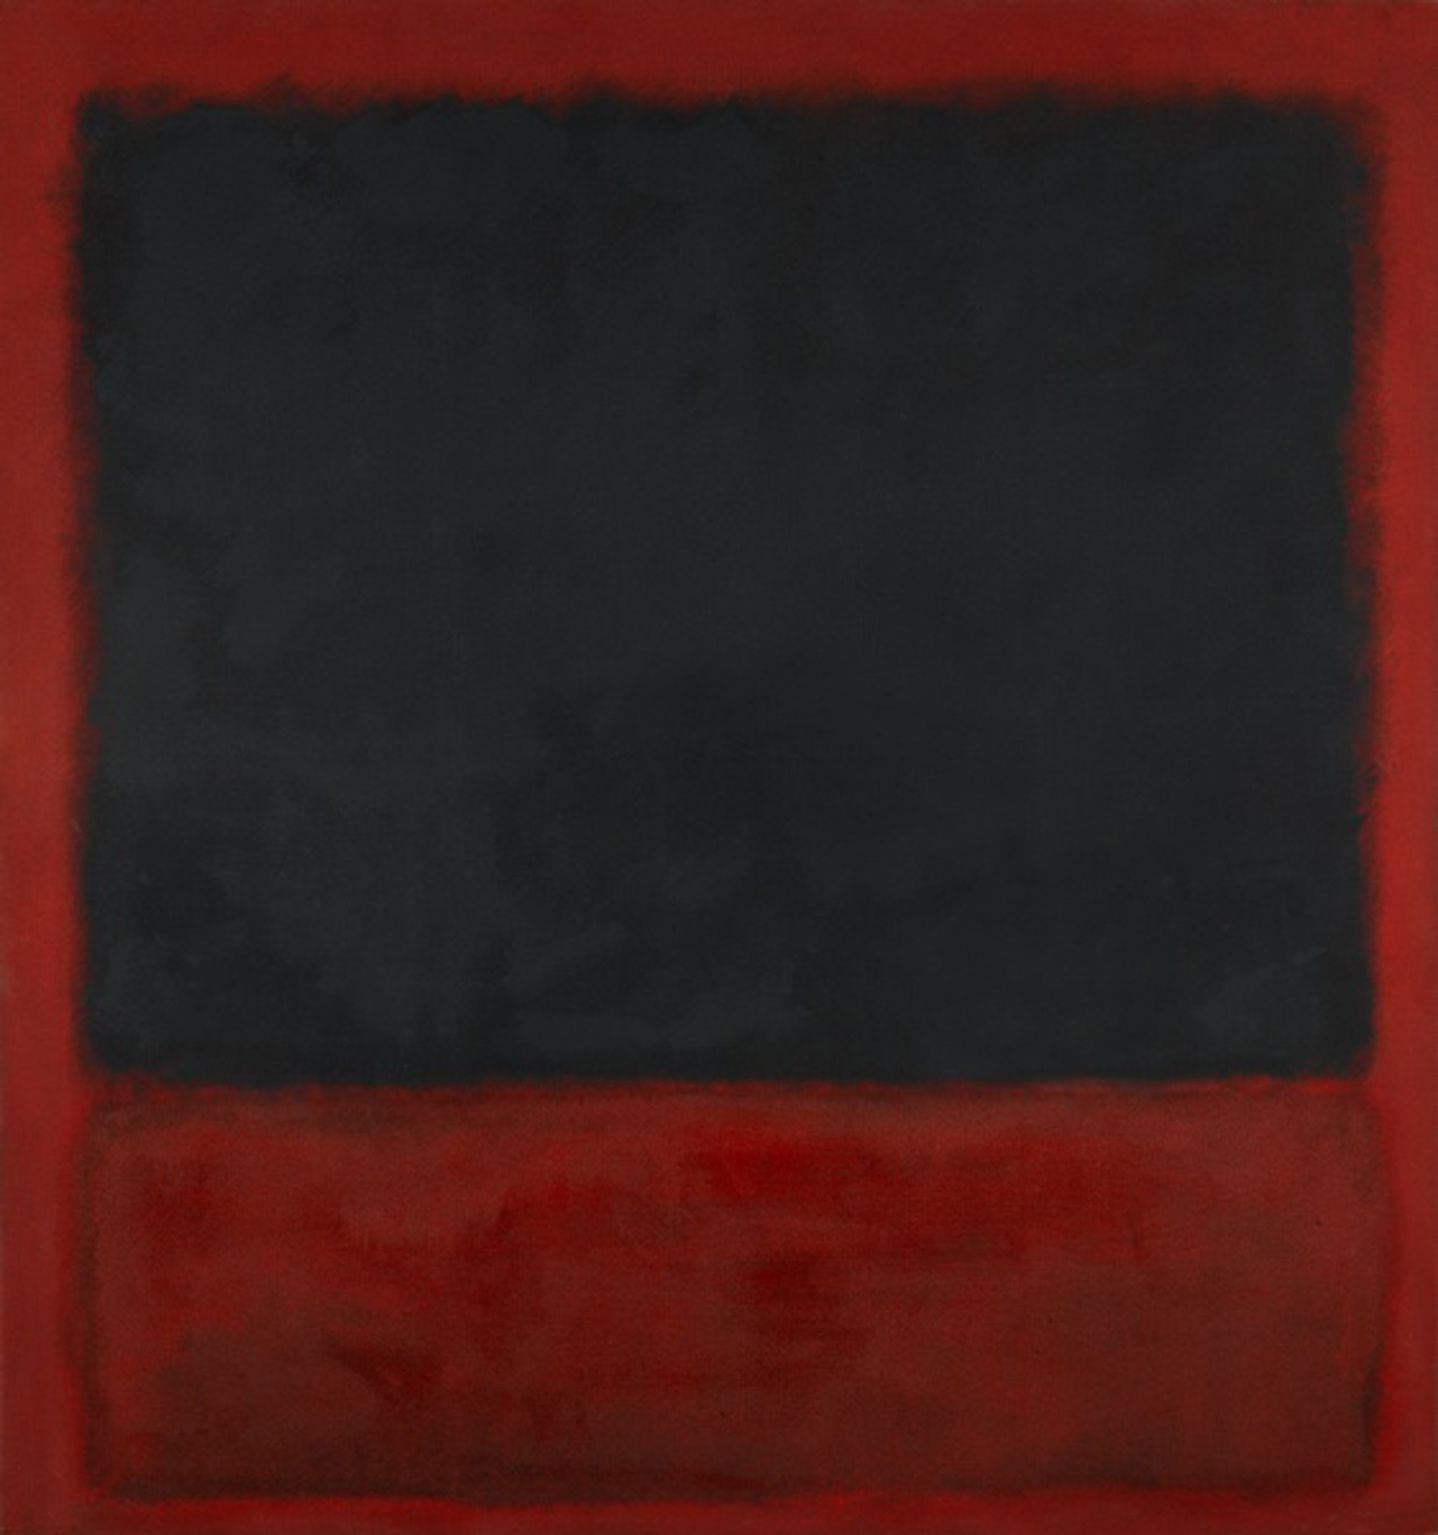 Untitled (Black, Red over Black on Red) 1964, 205 x 193 cm, Centre Pompidou